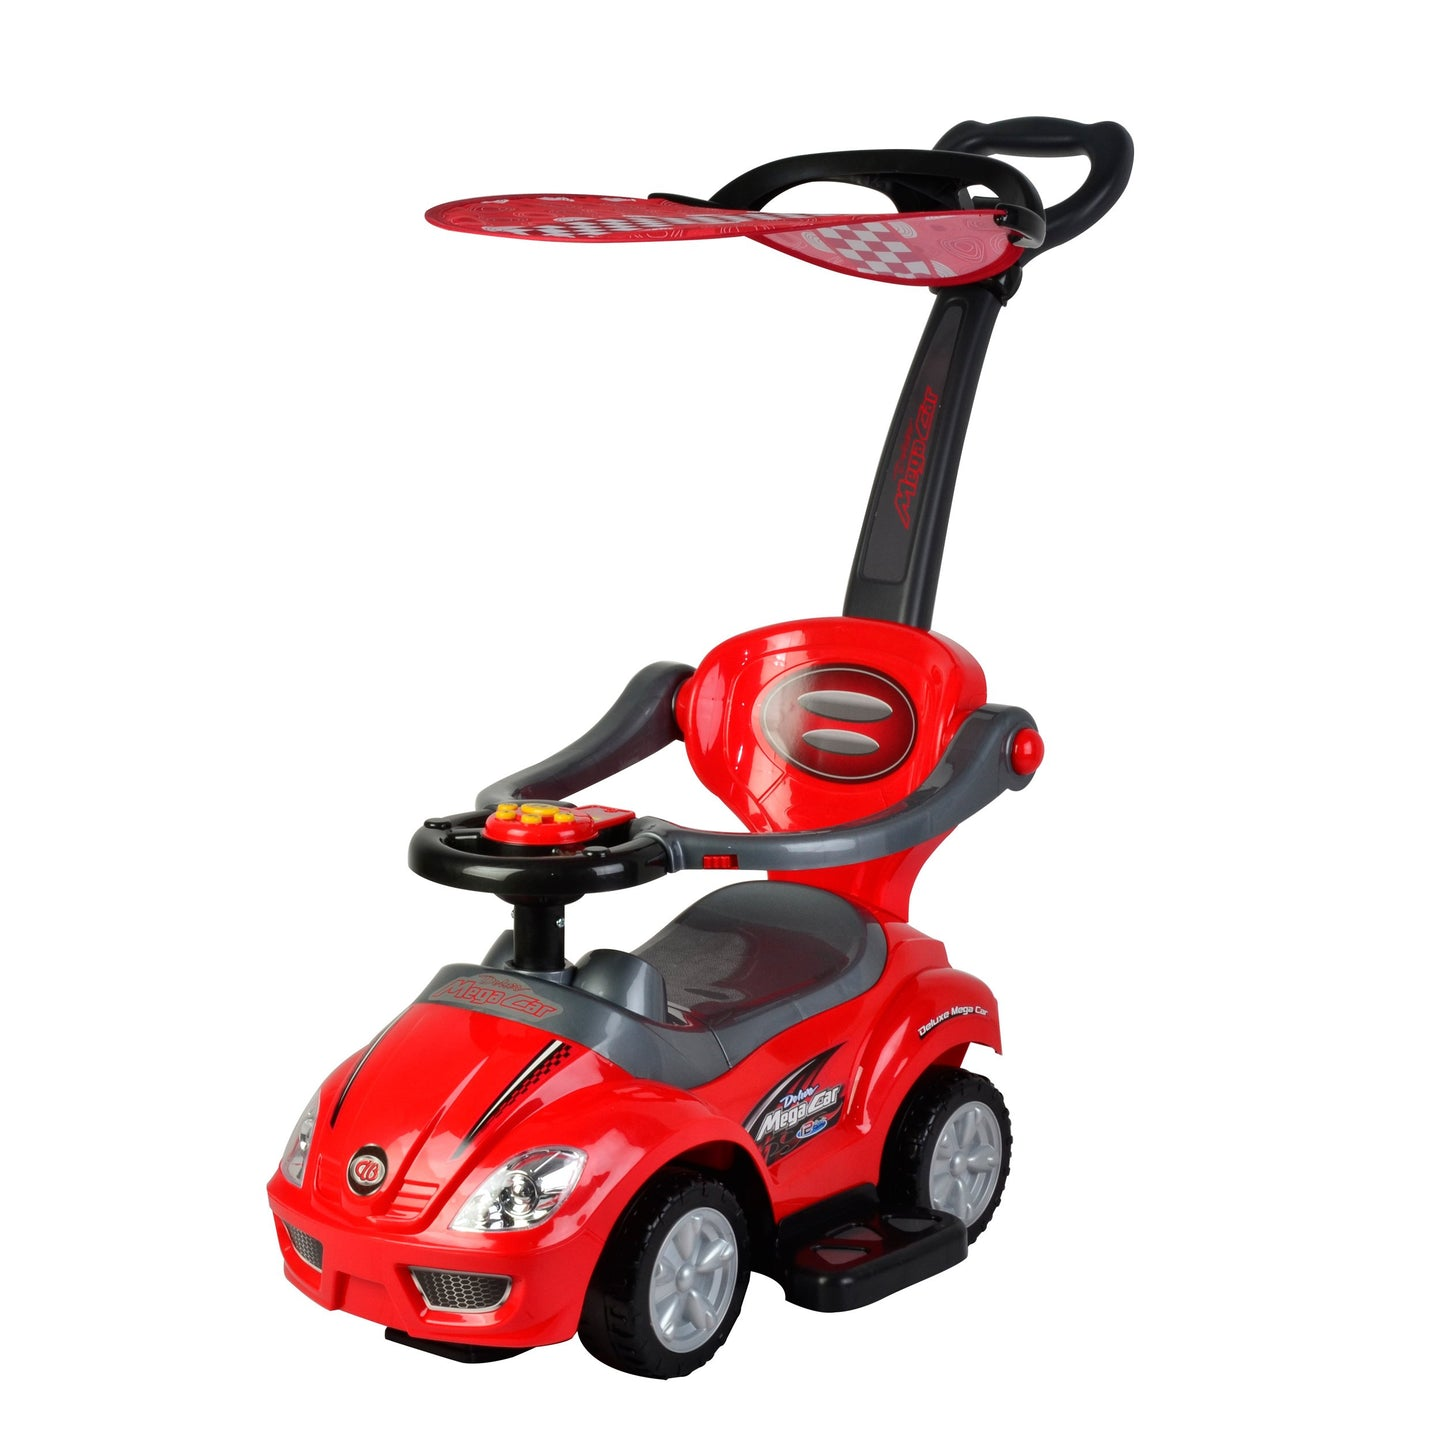 Wonder Wheels Kids 3 In 1 Ride On With Push Bar & Canopy - Red